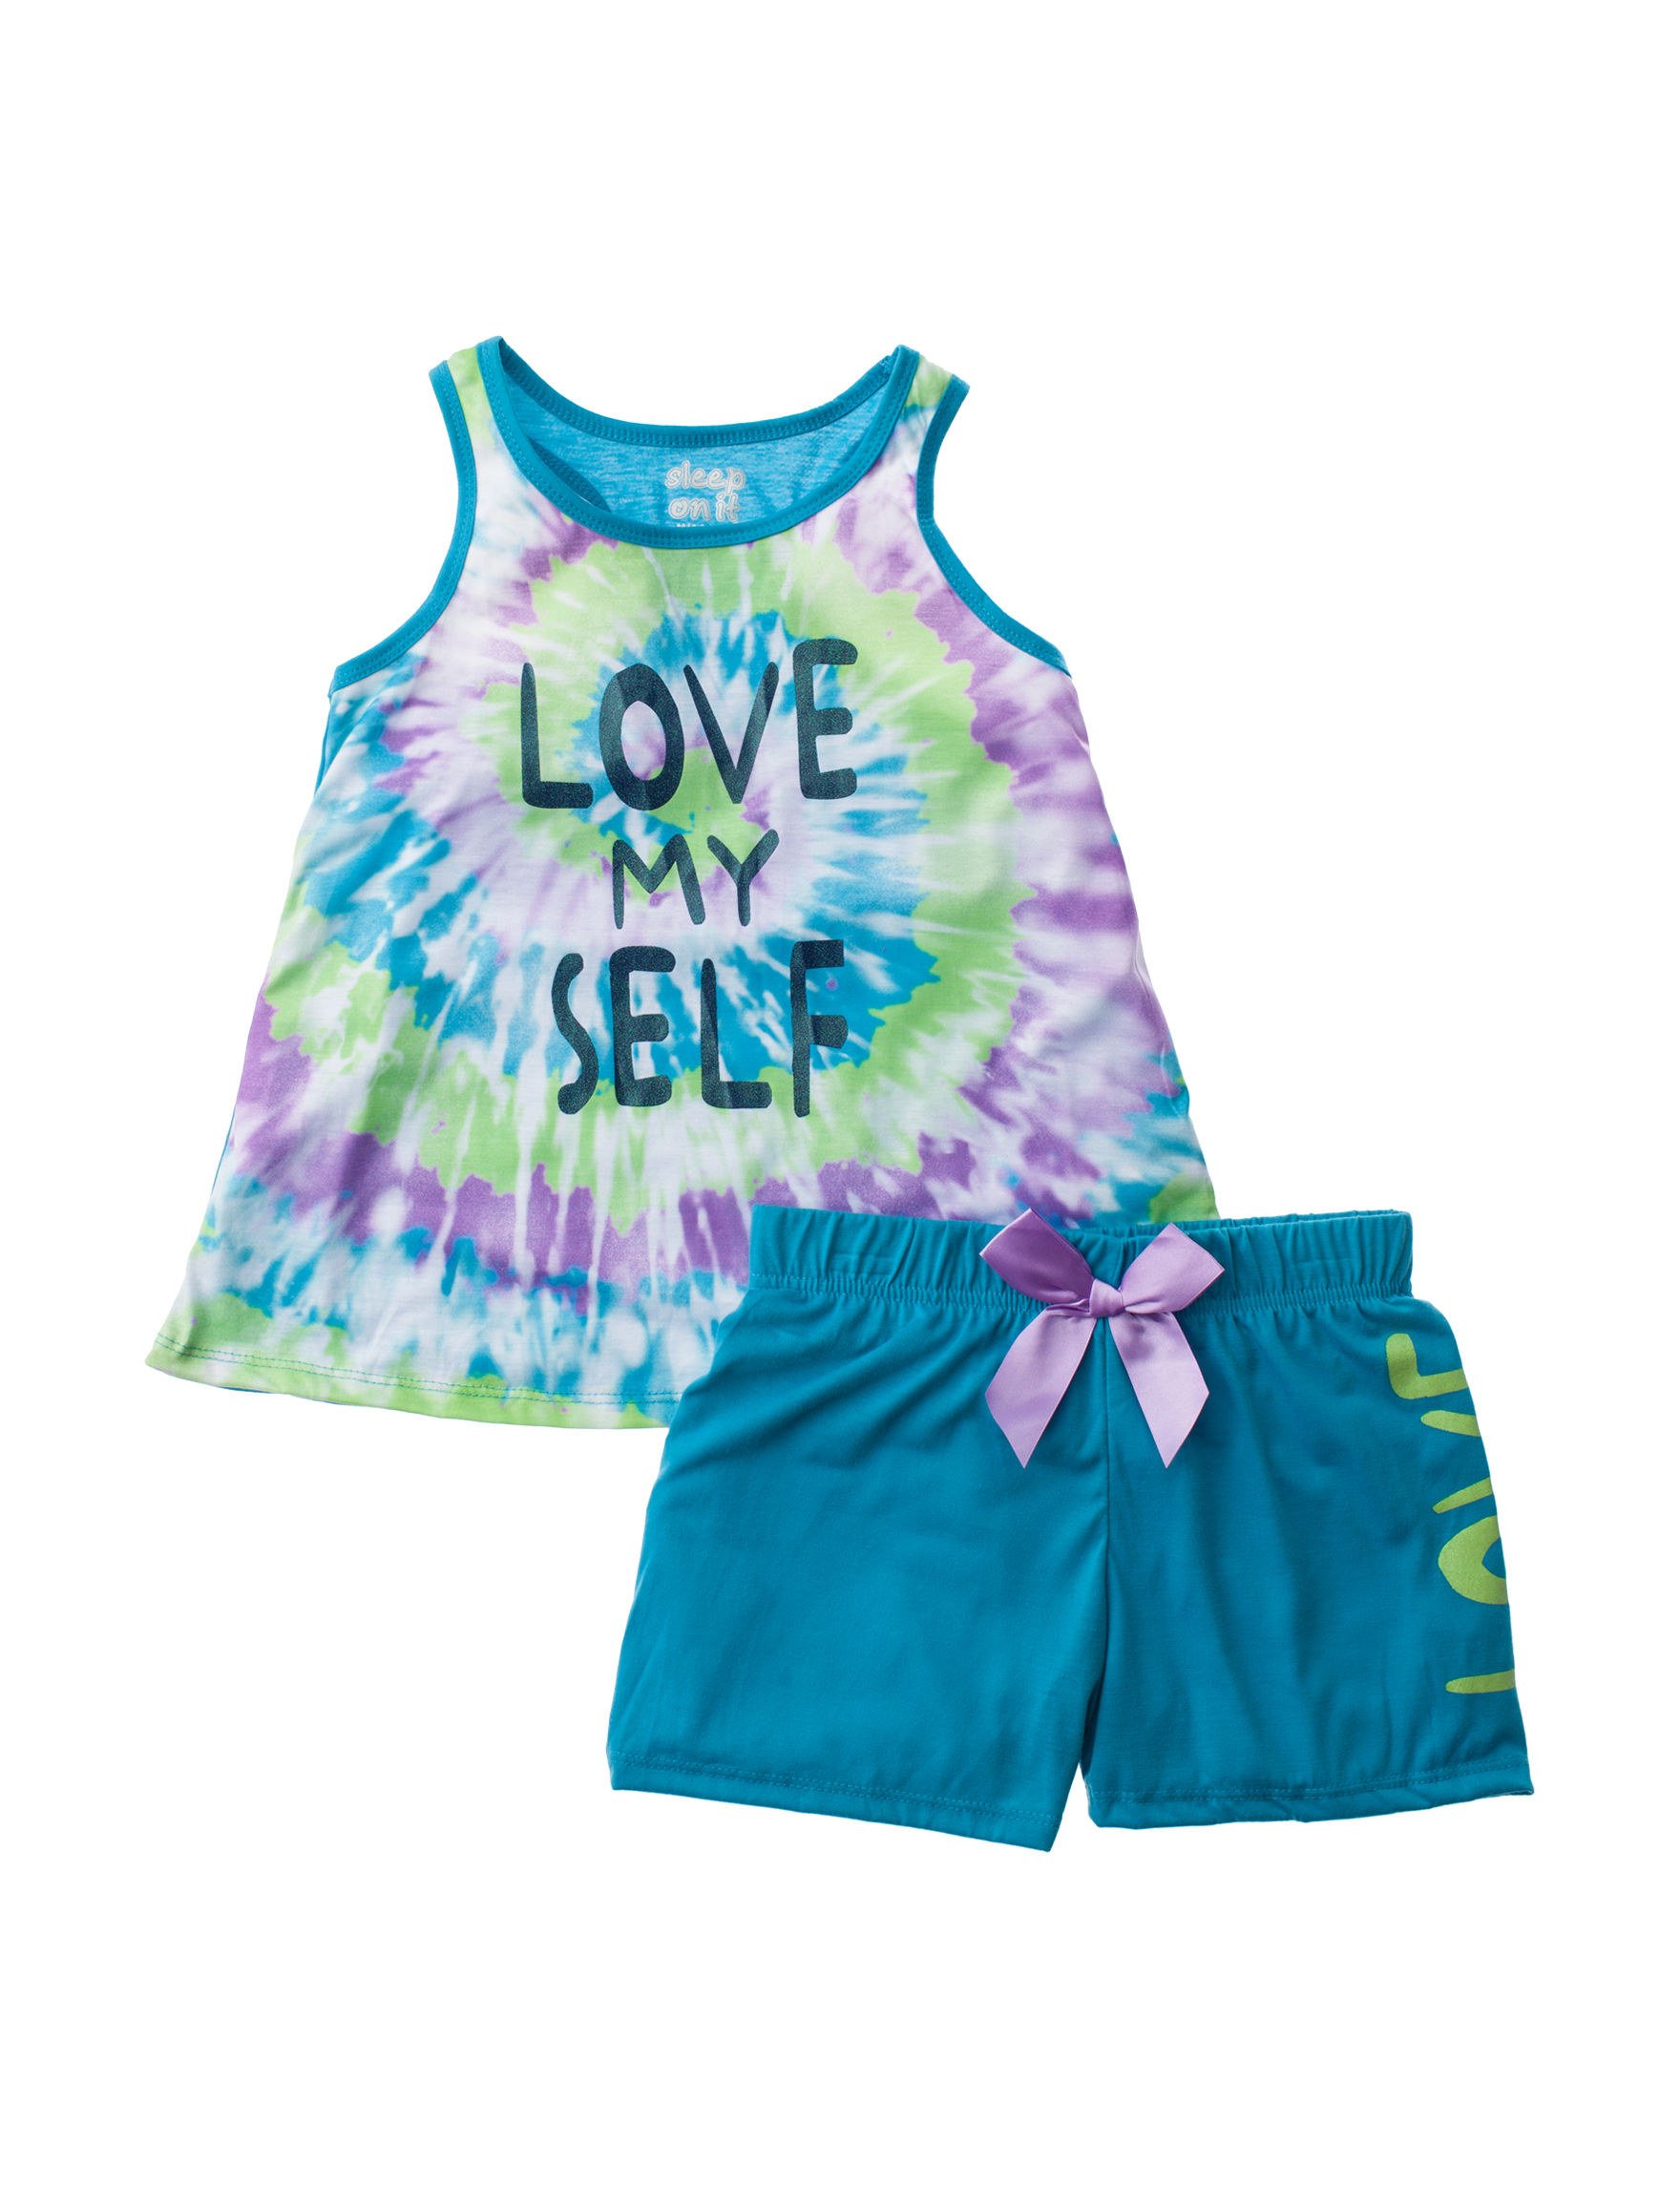 Cloud Nine Blue / Tie Dye Pajama Sets